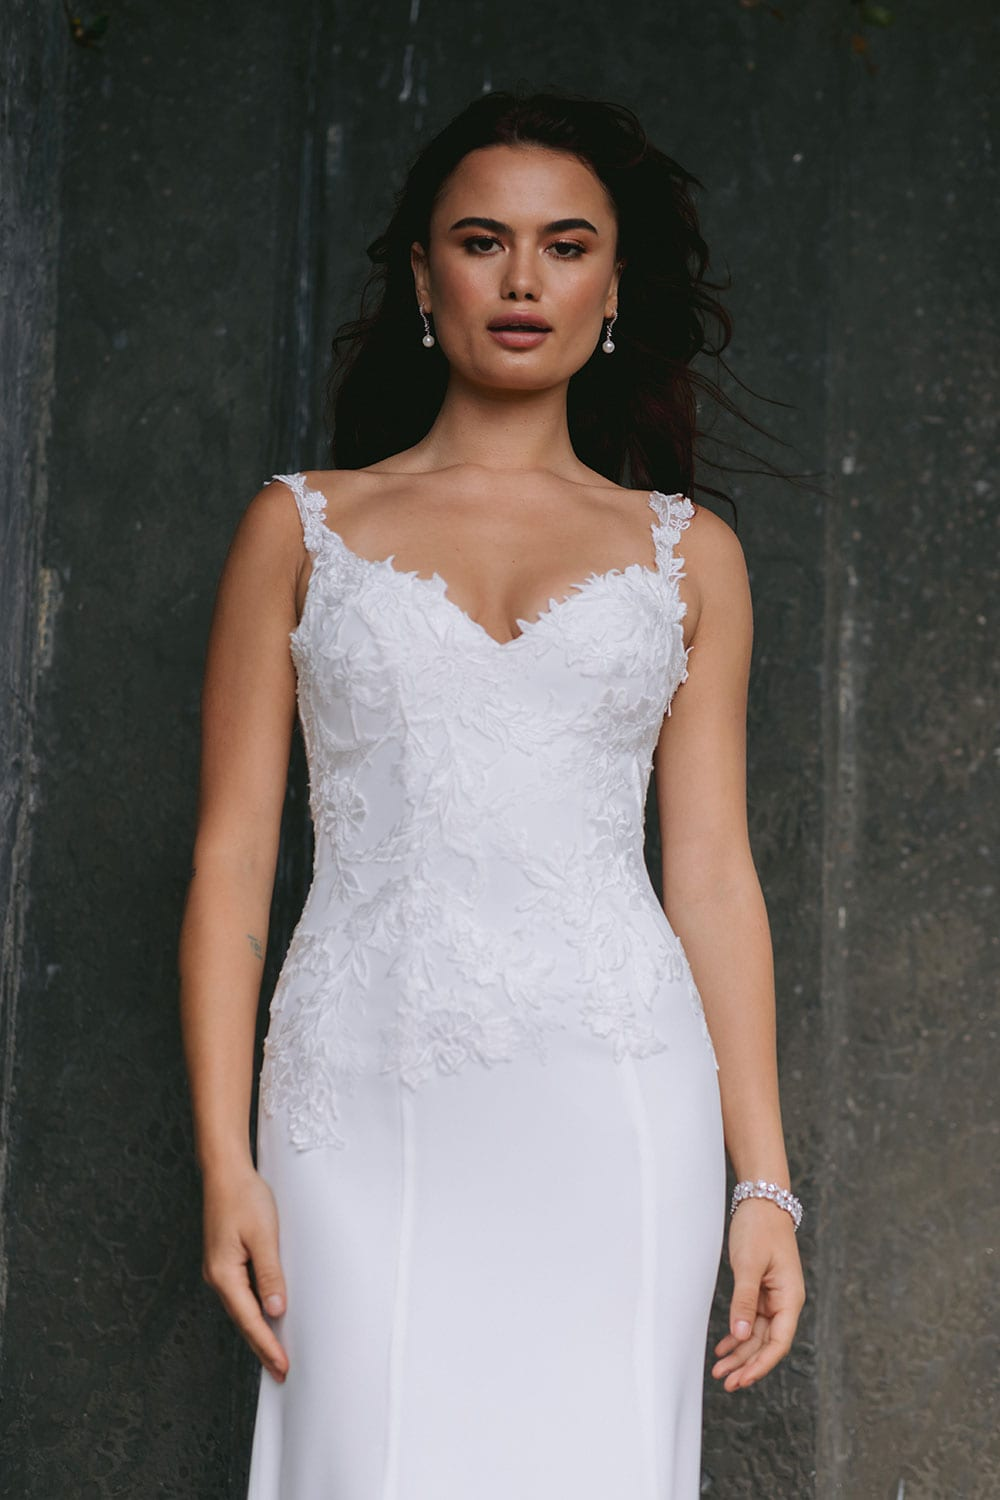 Ana Wedding gown from Vinka Design - This beautiful gown is graced by hand-appliqued delicate floral leaf lace, subtly worked into the front of the bodice and more prominently on the back. A fit-and-flare cut shapes the figure. Model wearing gown highlighting fit and flare shape.